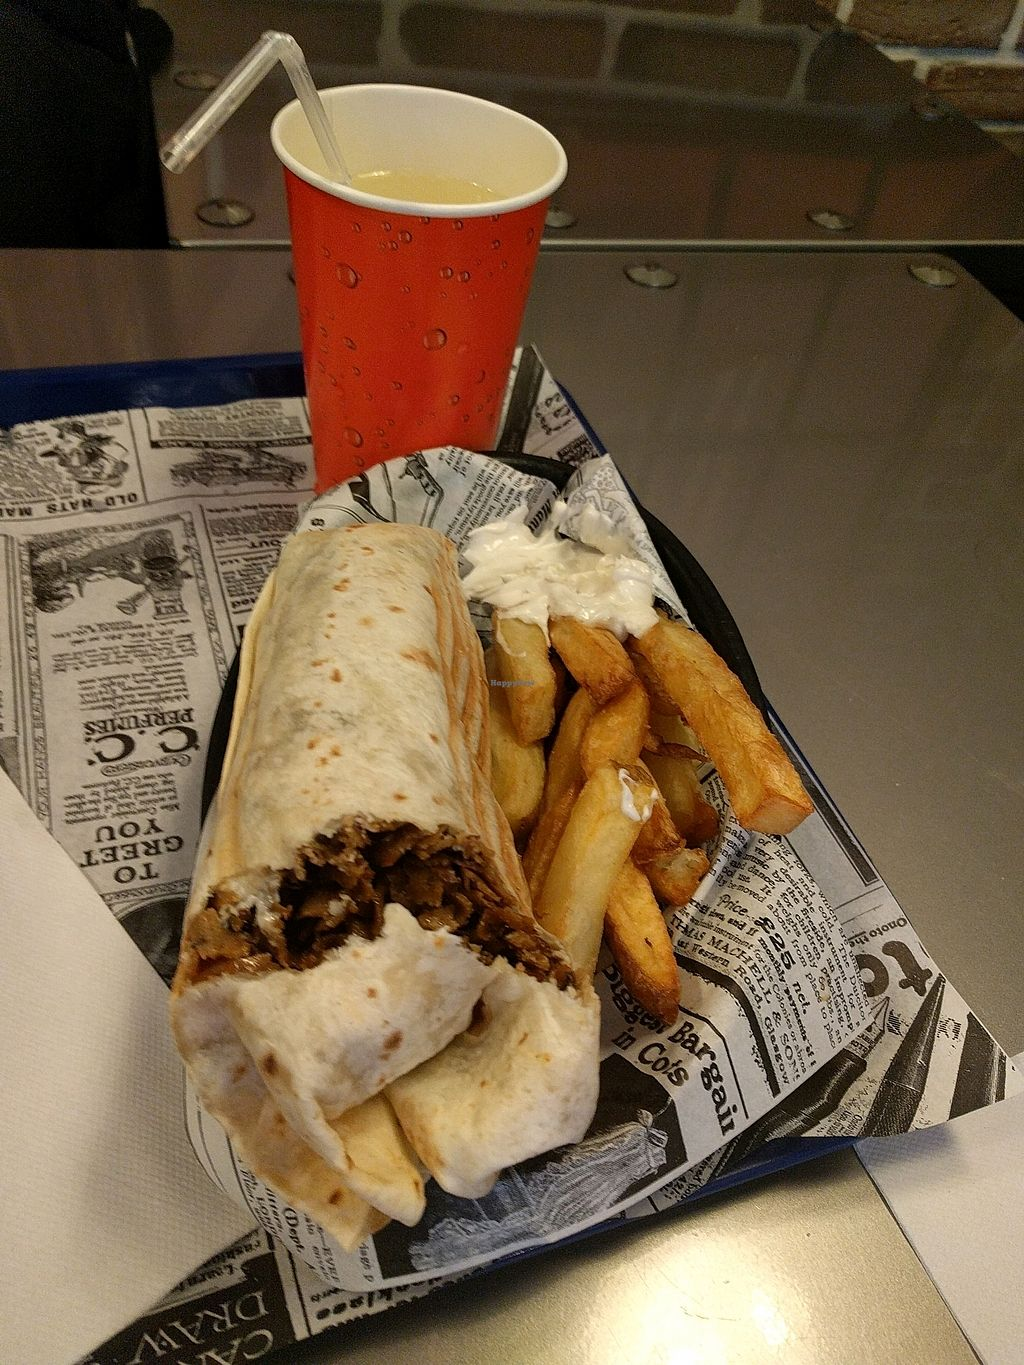 """Photo of Super Vegan  by <a href=""""/members/profile/SimonVandendyck"""">SimonVandendyck</a> <br/>Kebab + frites <br/> October 13, 2017  - <a href='/contact/abuse/image/71044/314865'>Report</a>"""